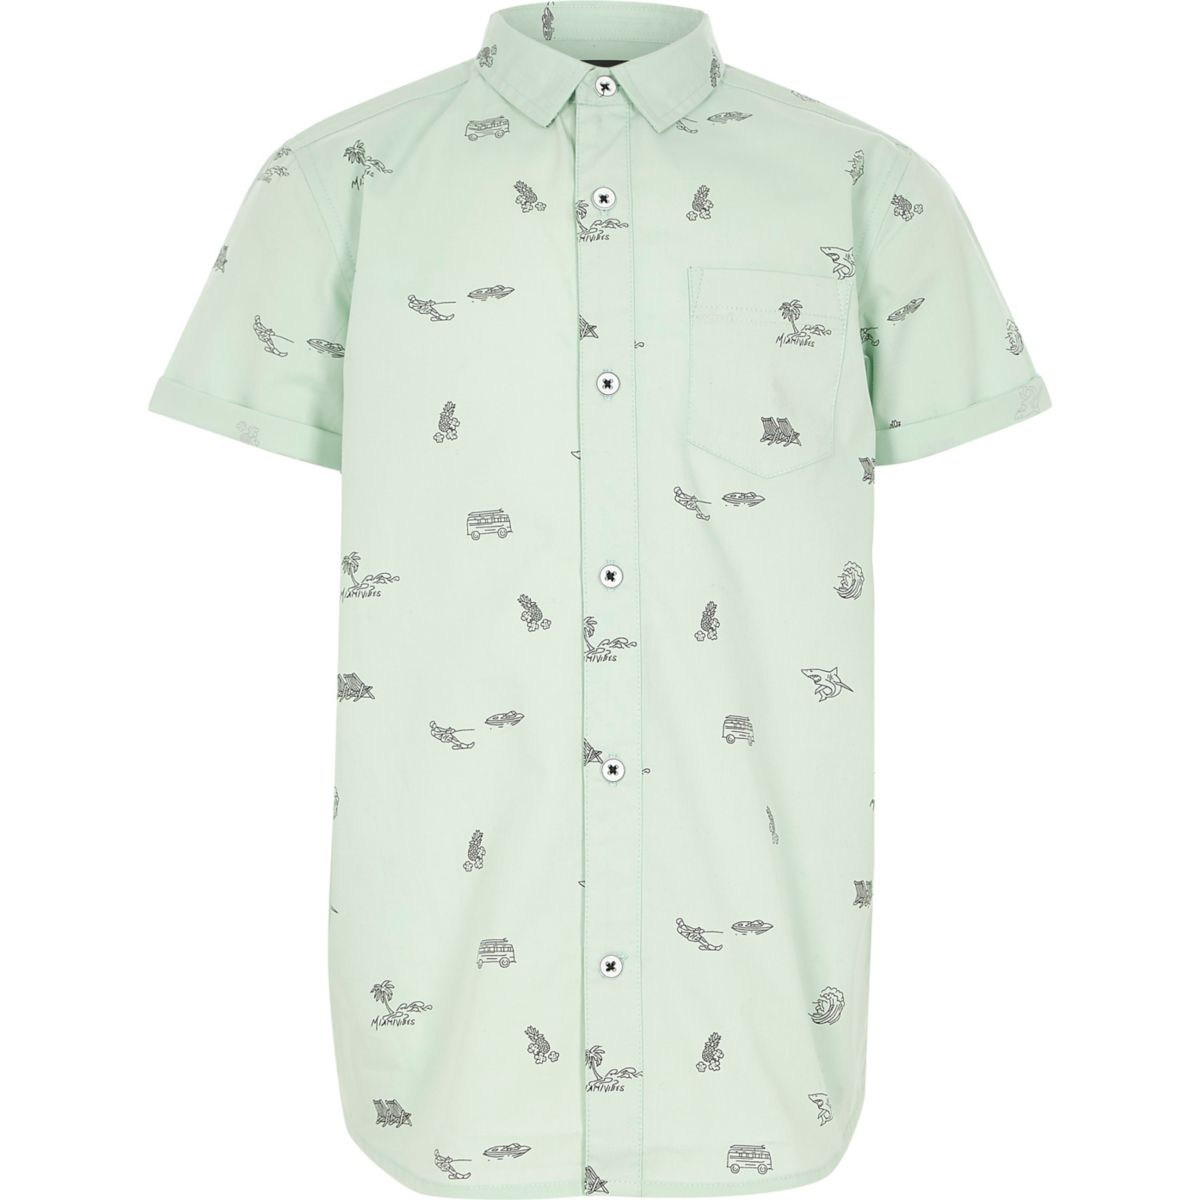 Boys light green print short sleeve shirt